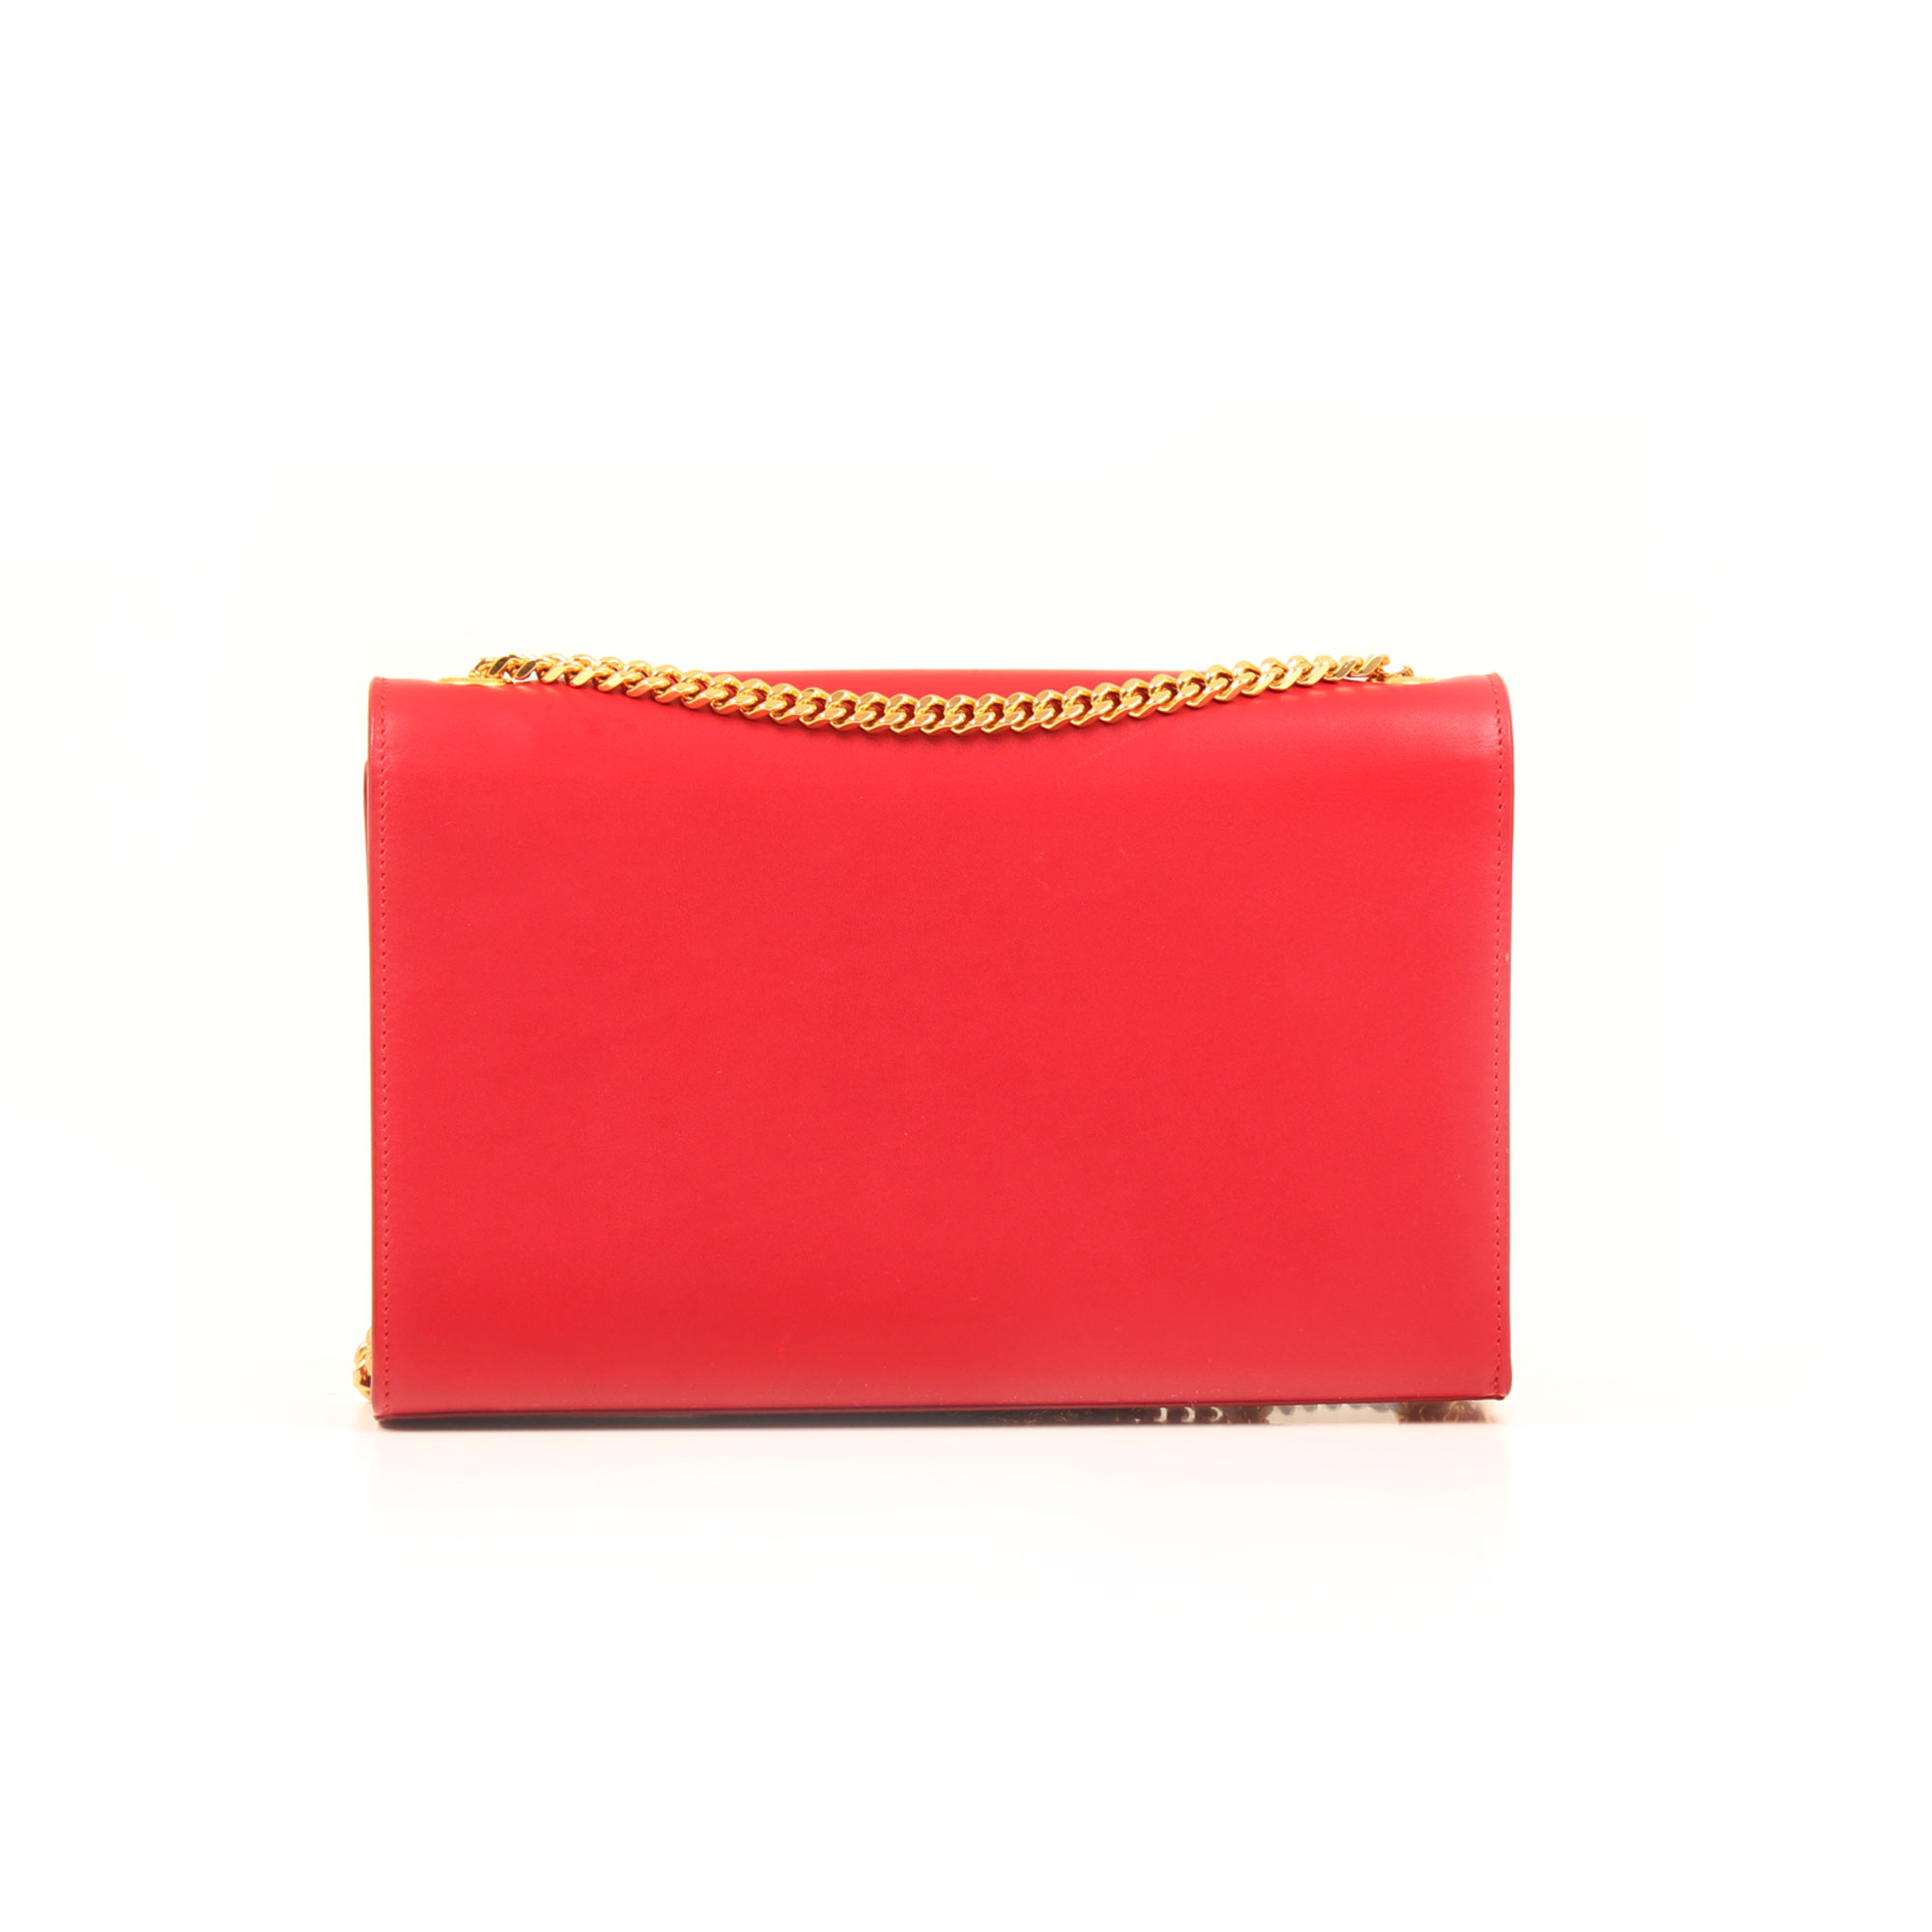 Back image of ysl kate medium bag red calfskin leather back